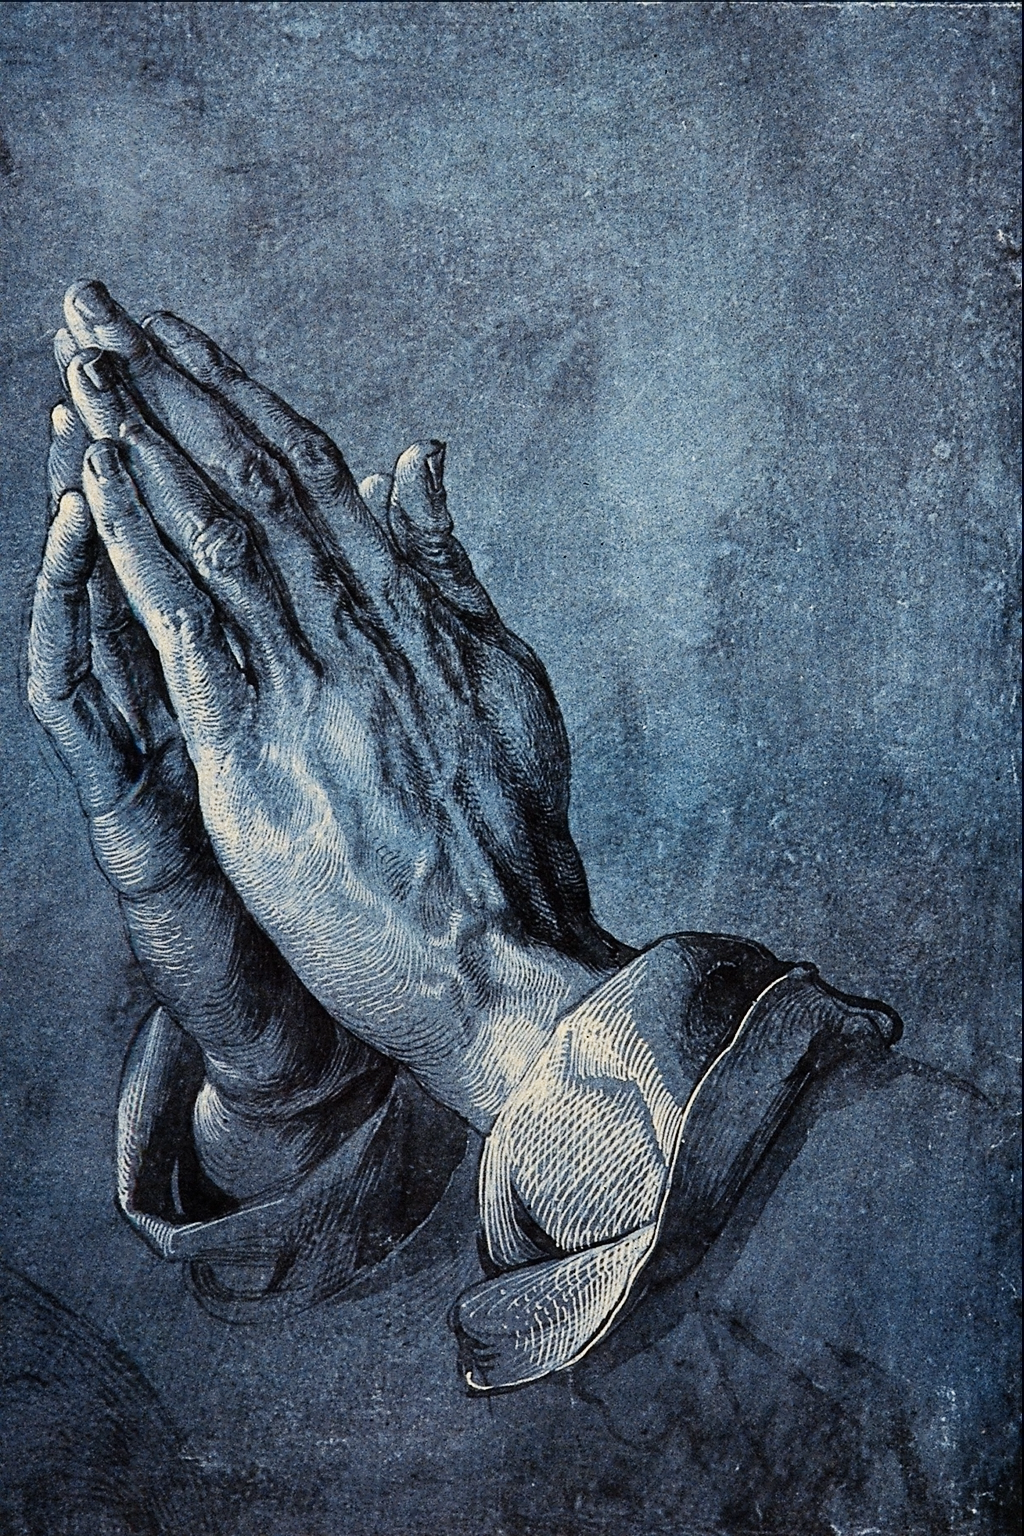 Albrecht Durer's 'Praying Hands'- Albrecht Dürer -